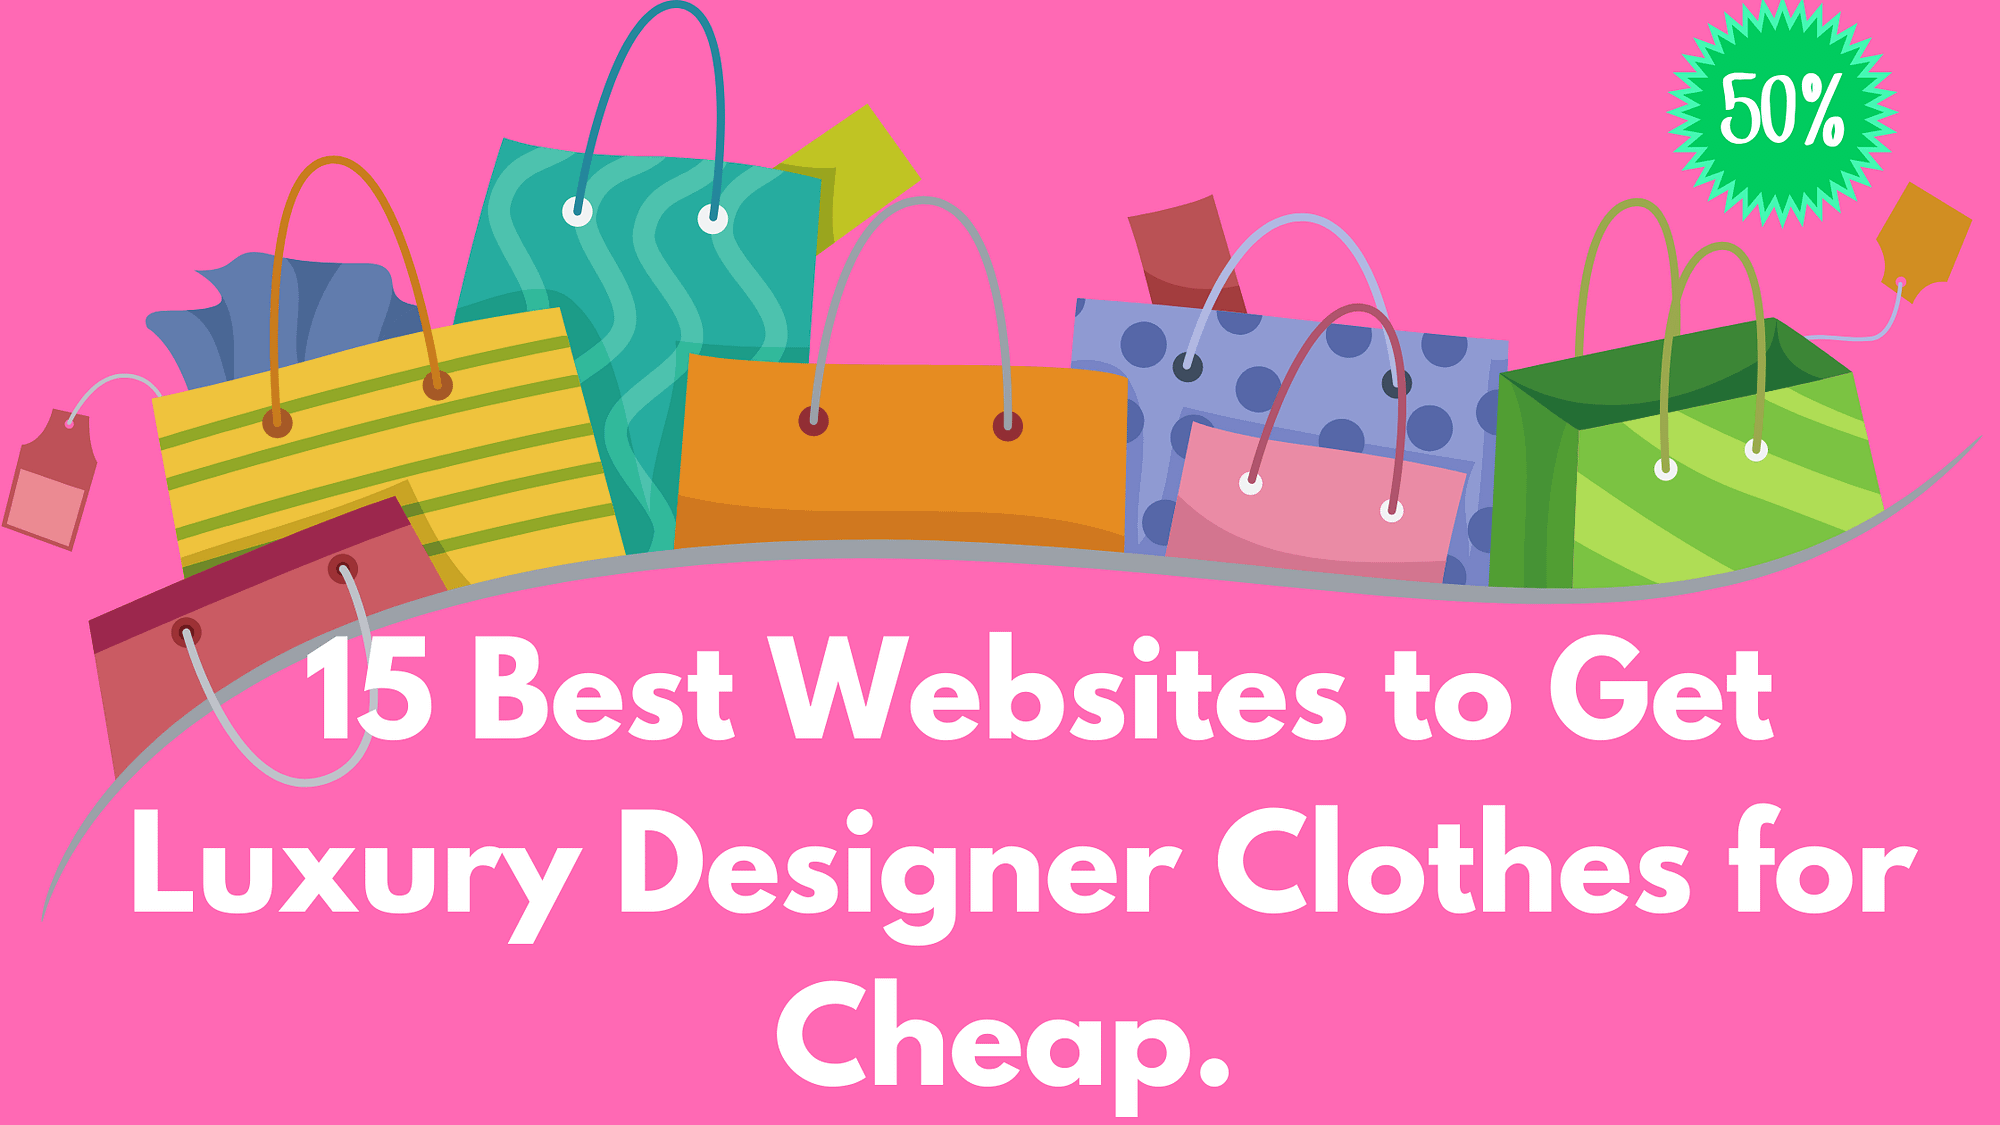 The 15 Best Websites to Get Luxury Designer Clothes for Cheap.